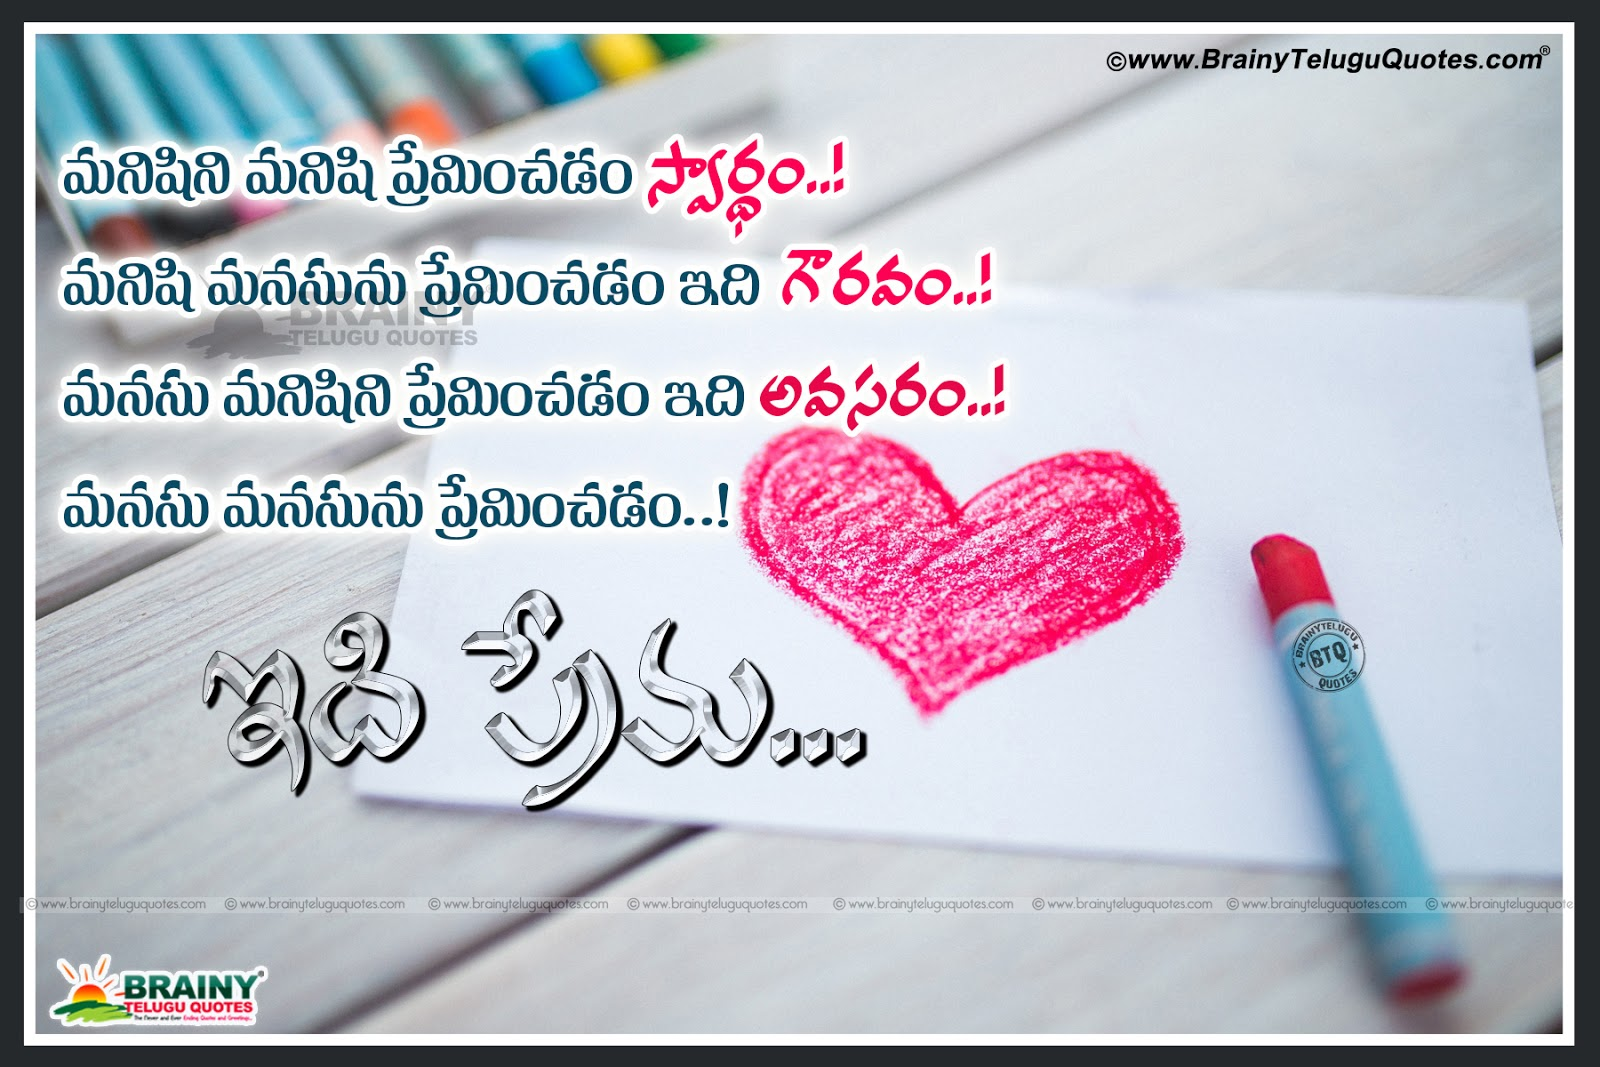 true love value quotes with hd wallpapers in telugu telugu